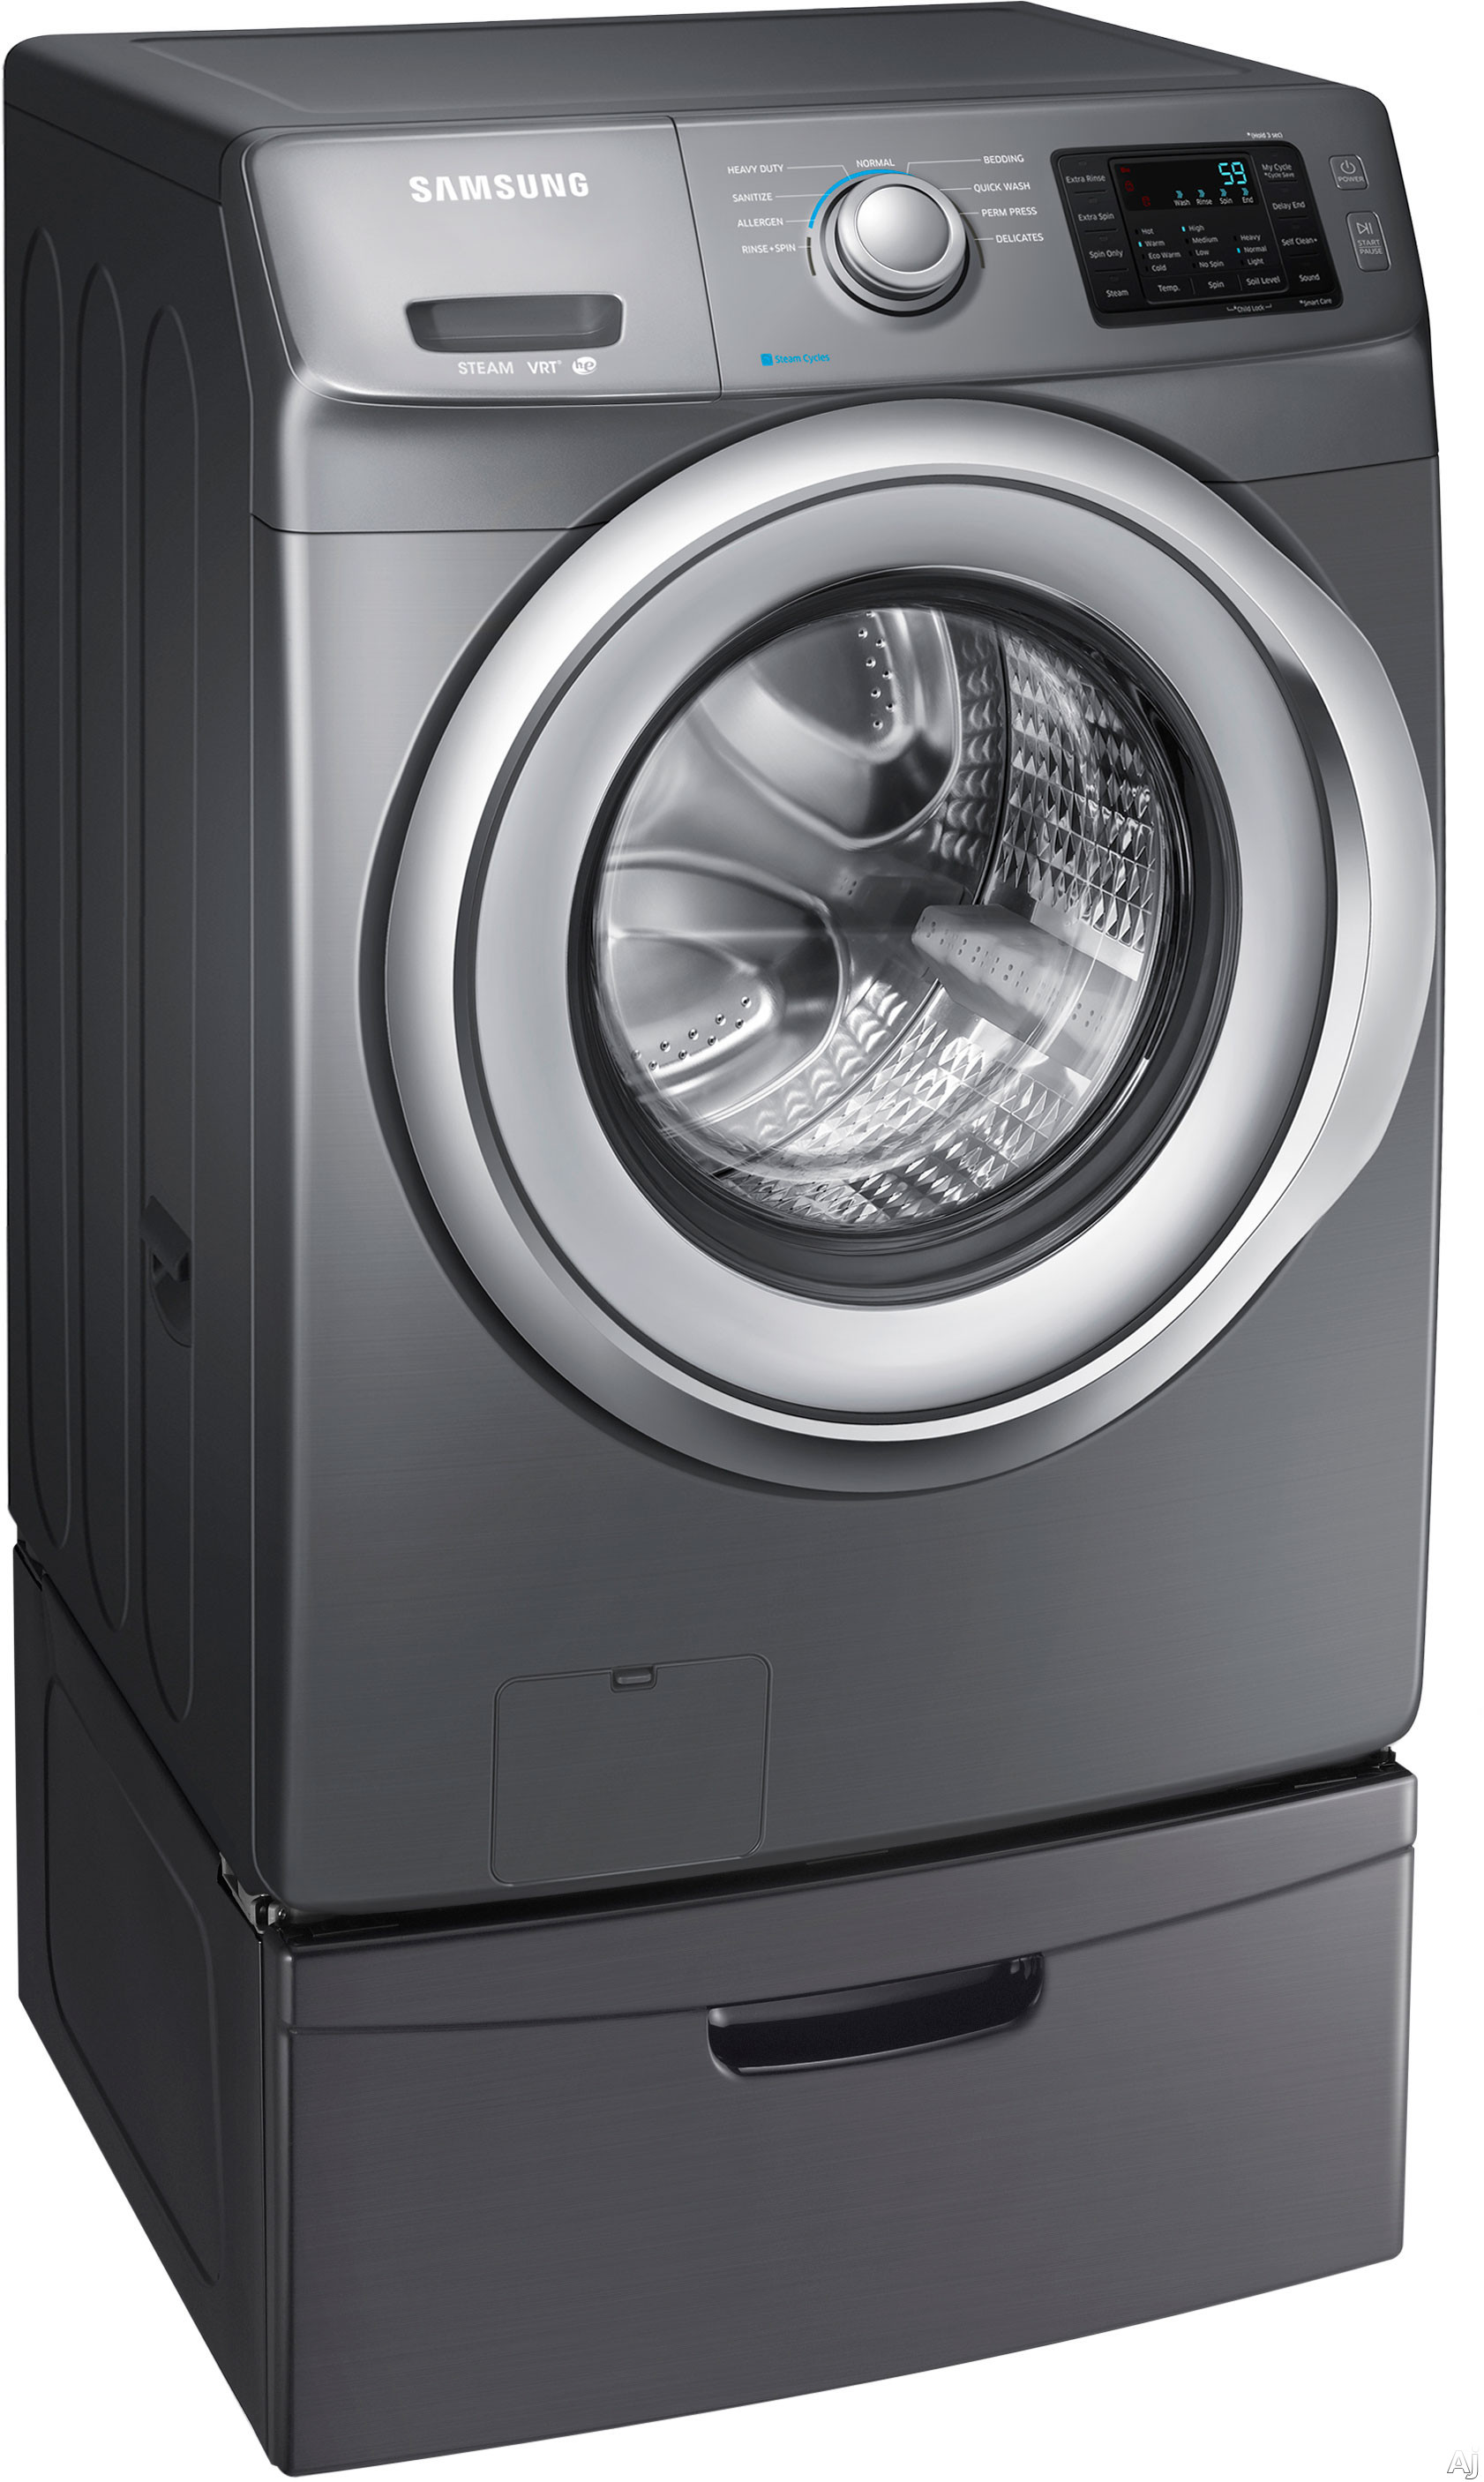 Samsung Wf42h A 27 4 2 Cu Ft Front Load Washer With